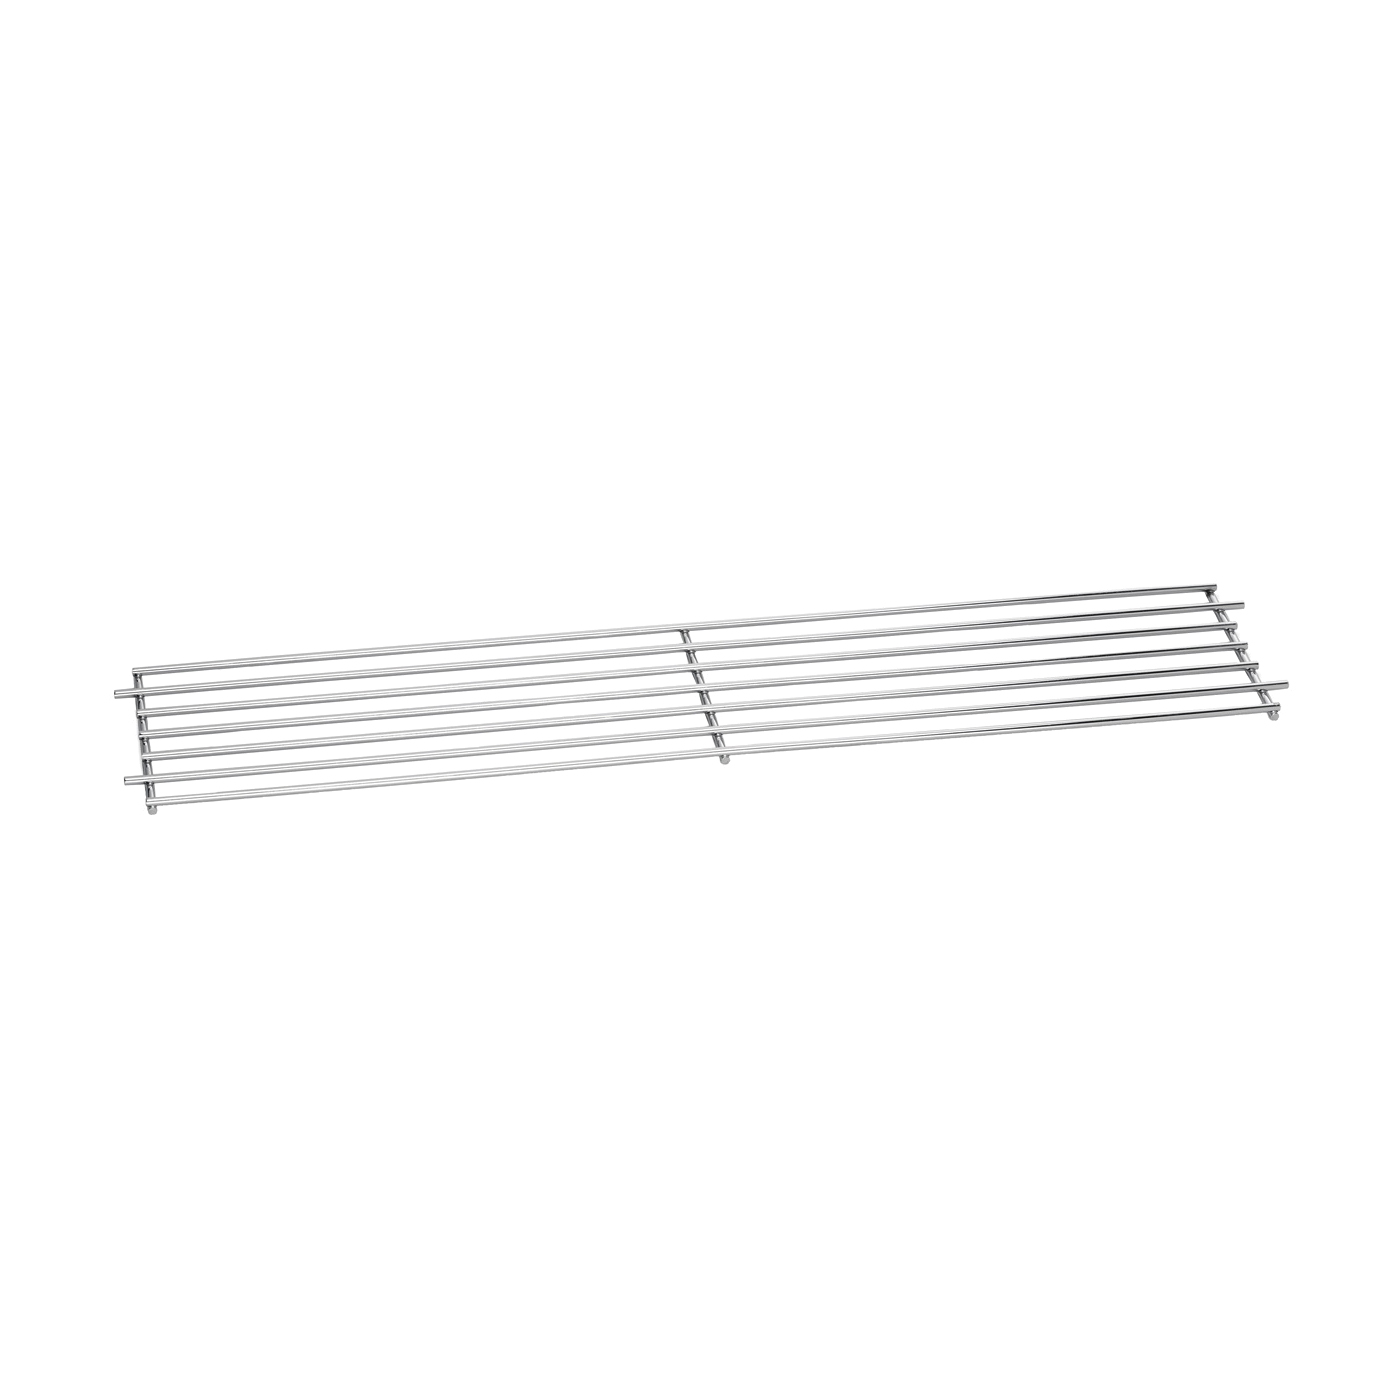 Picture of Weber 7513 Warming Rack, 24.9 in L, 4.7 in W, Steel, Chrome